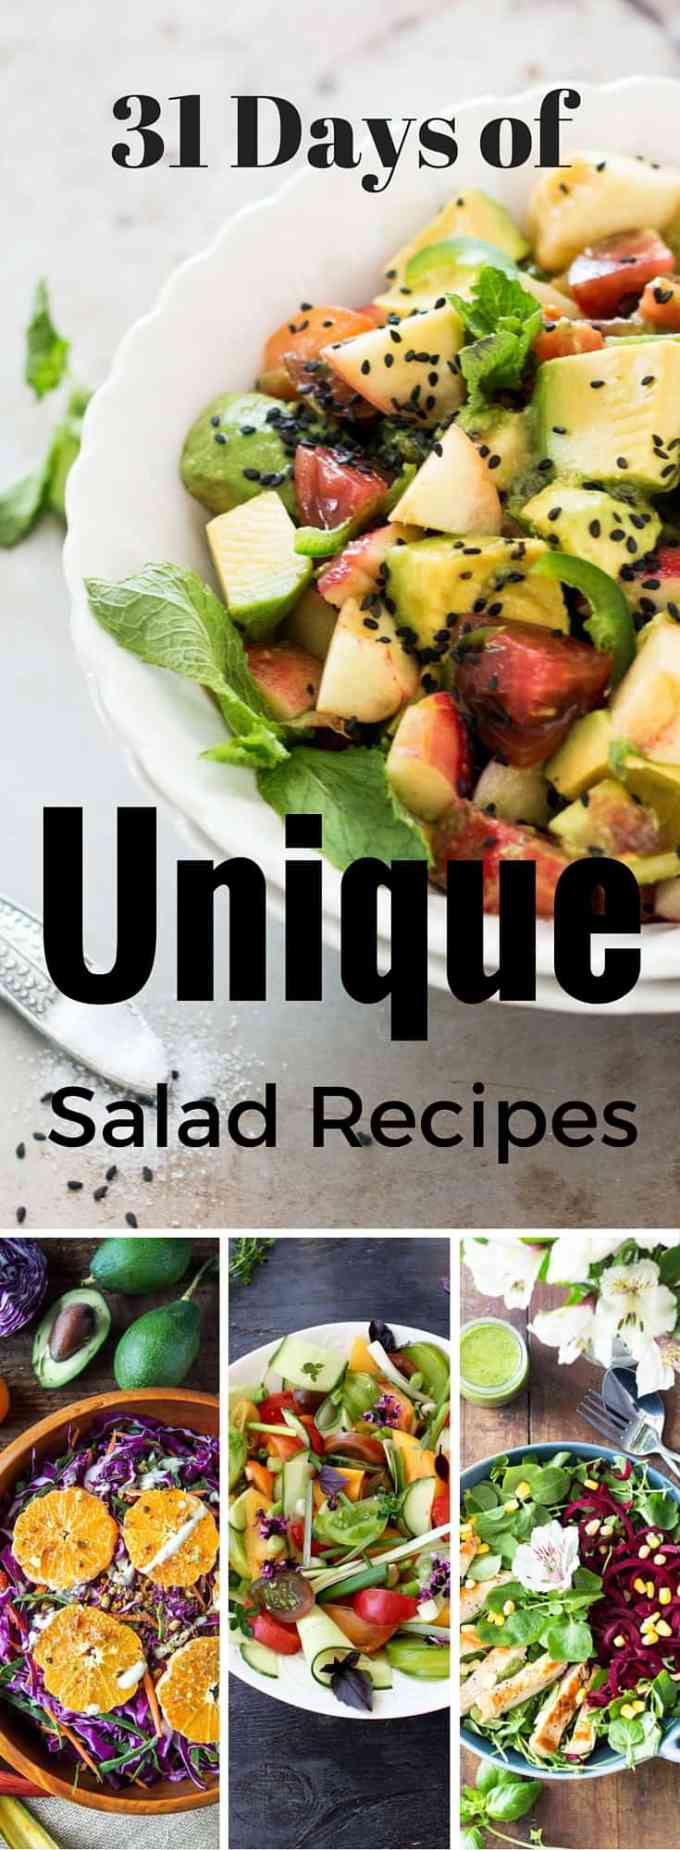 31 Days of Unique Salad Recipes